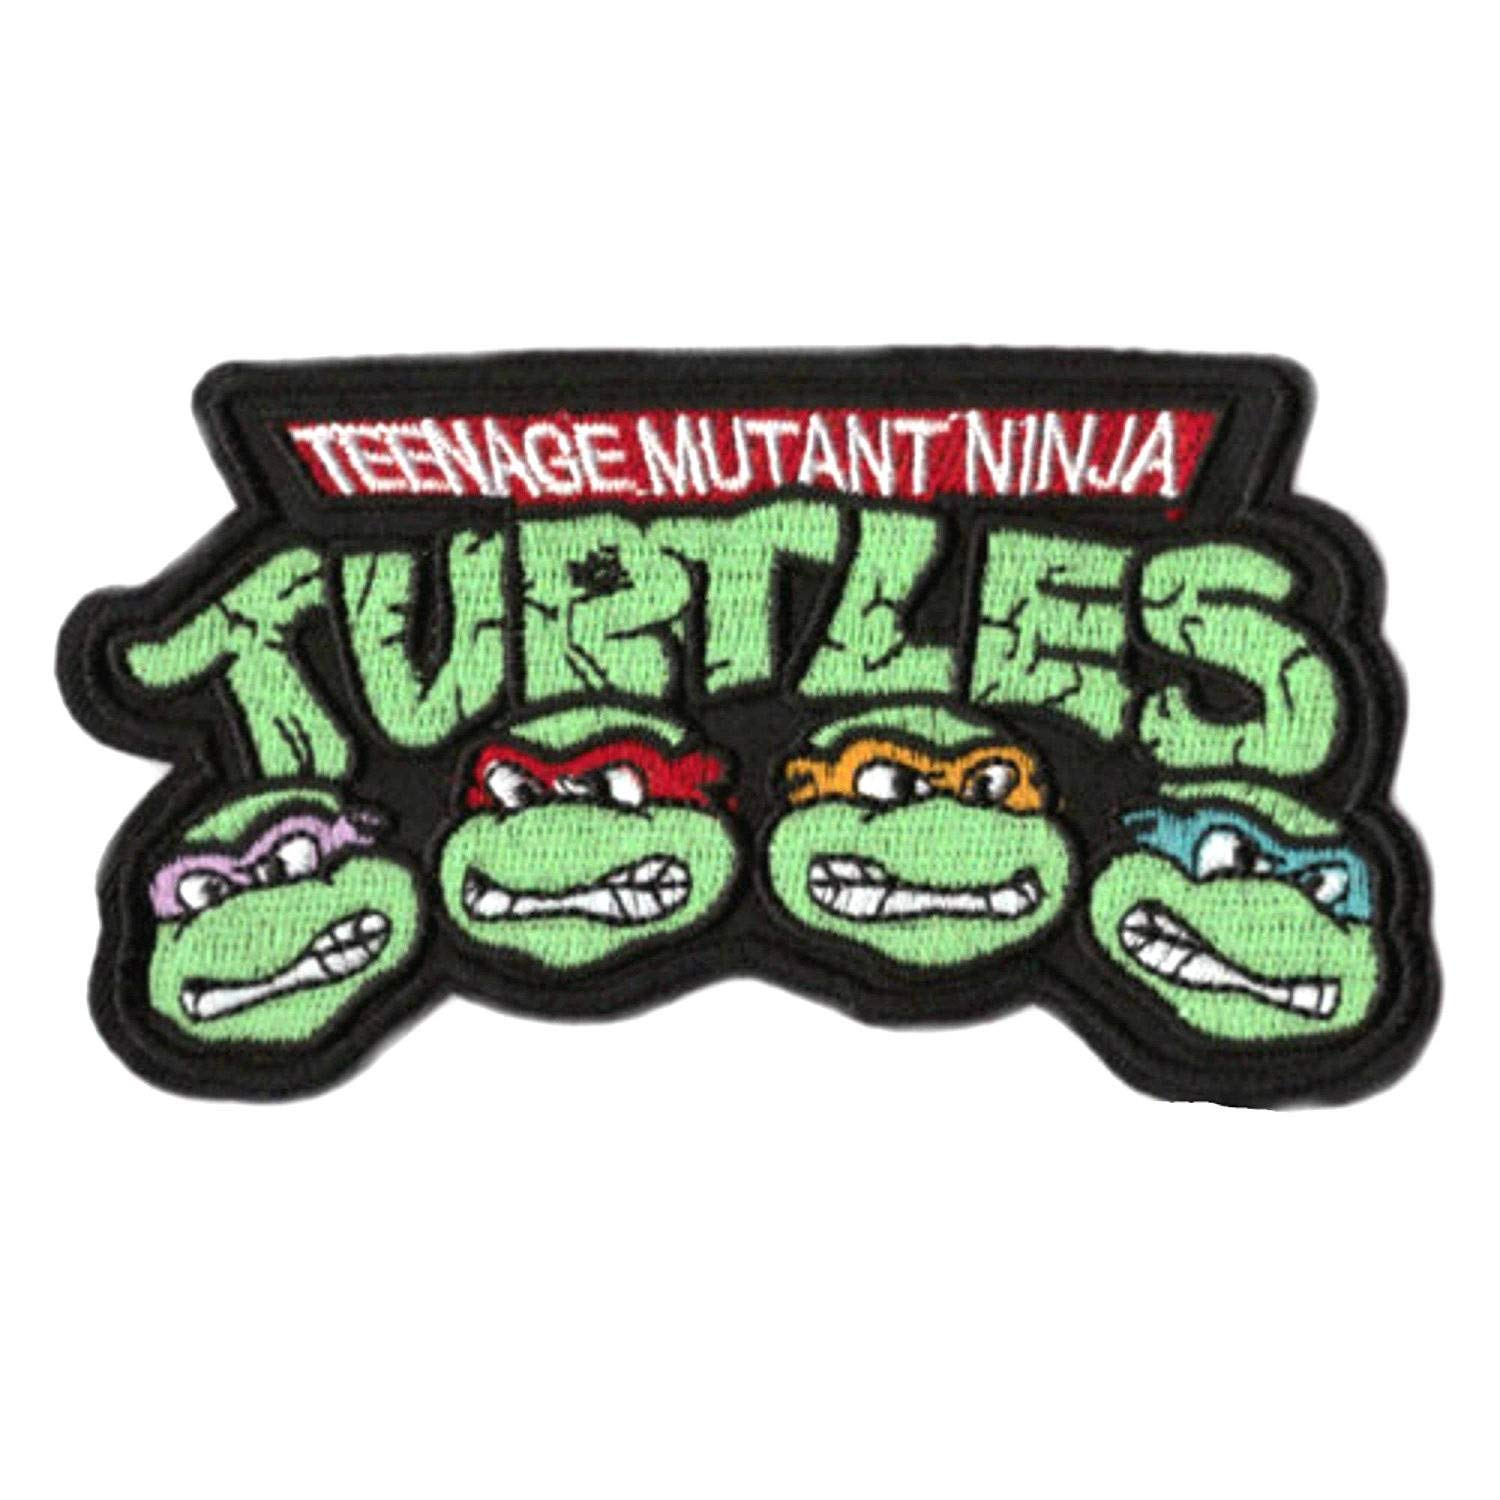 Amazon.com: Teenage Mutant Ninja Turtles Embroidered Iron on ...